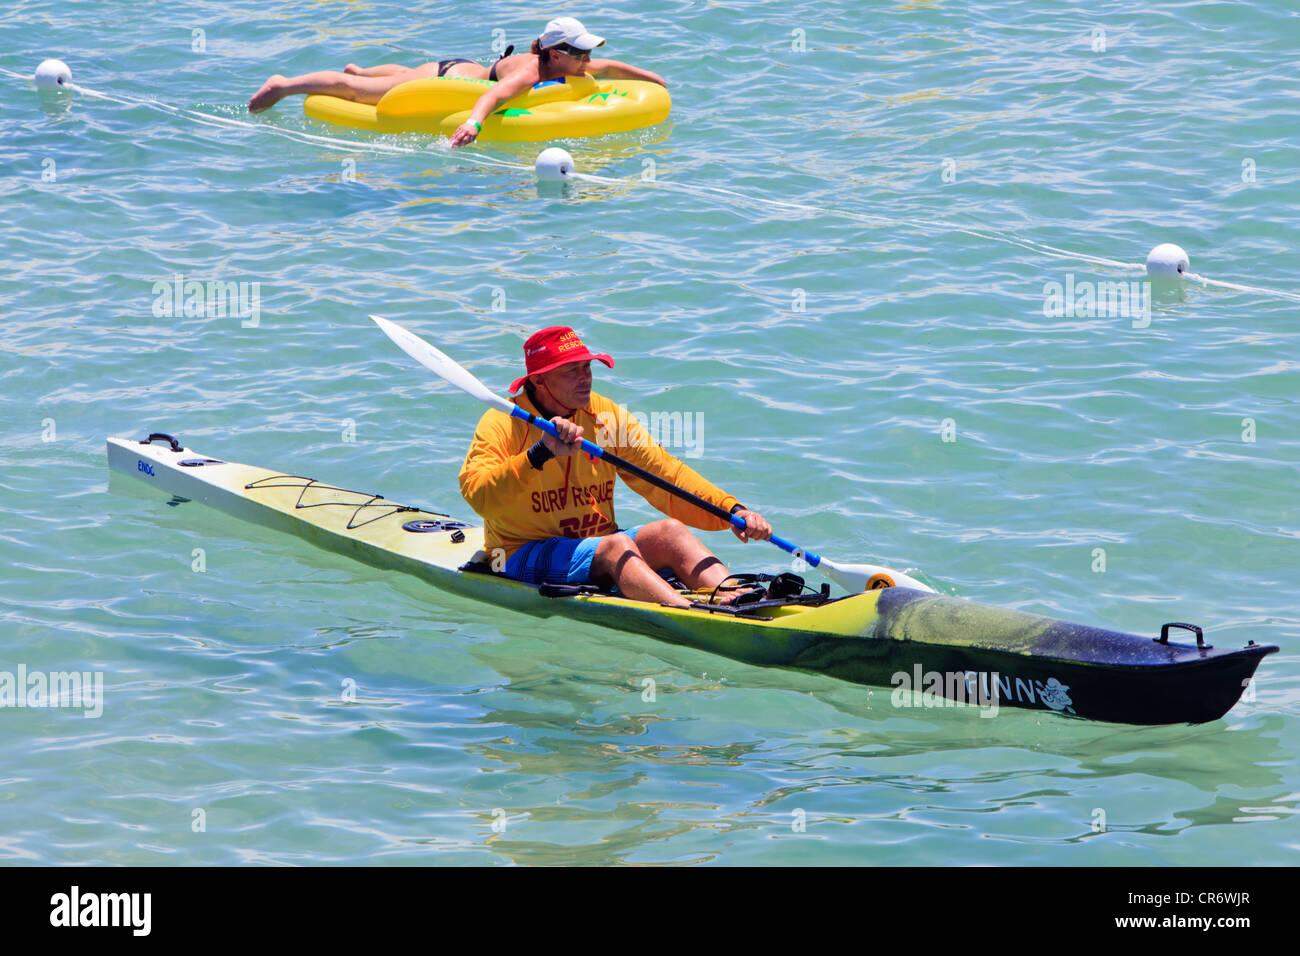 Surf Life Saver in a kayak at Cottesloe Beach in Perth, Western Australia - Stock Image